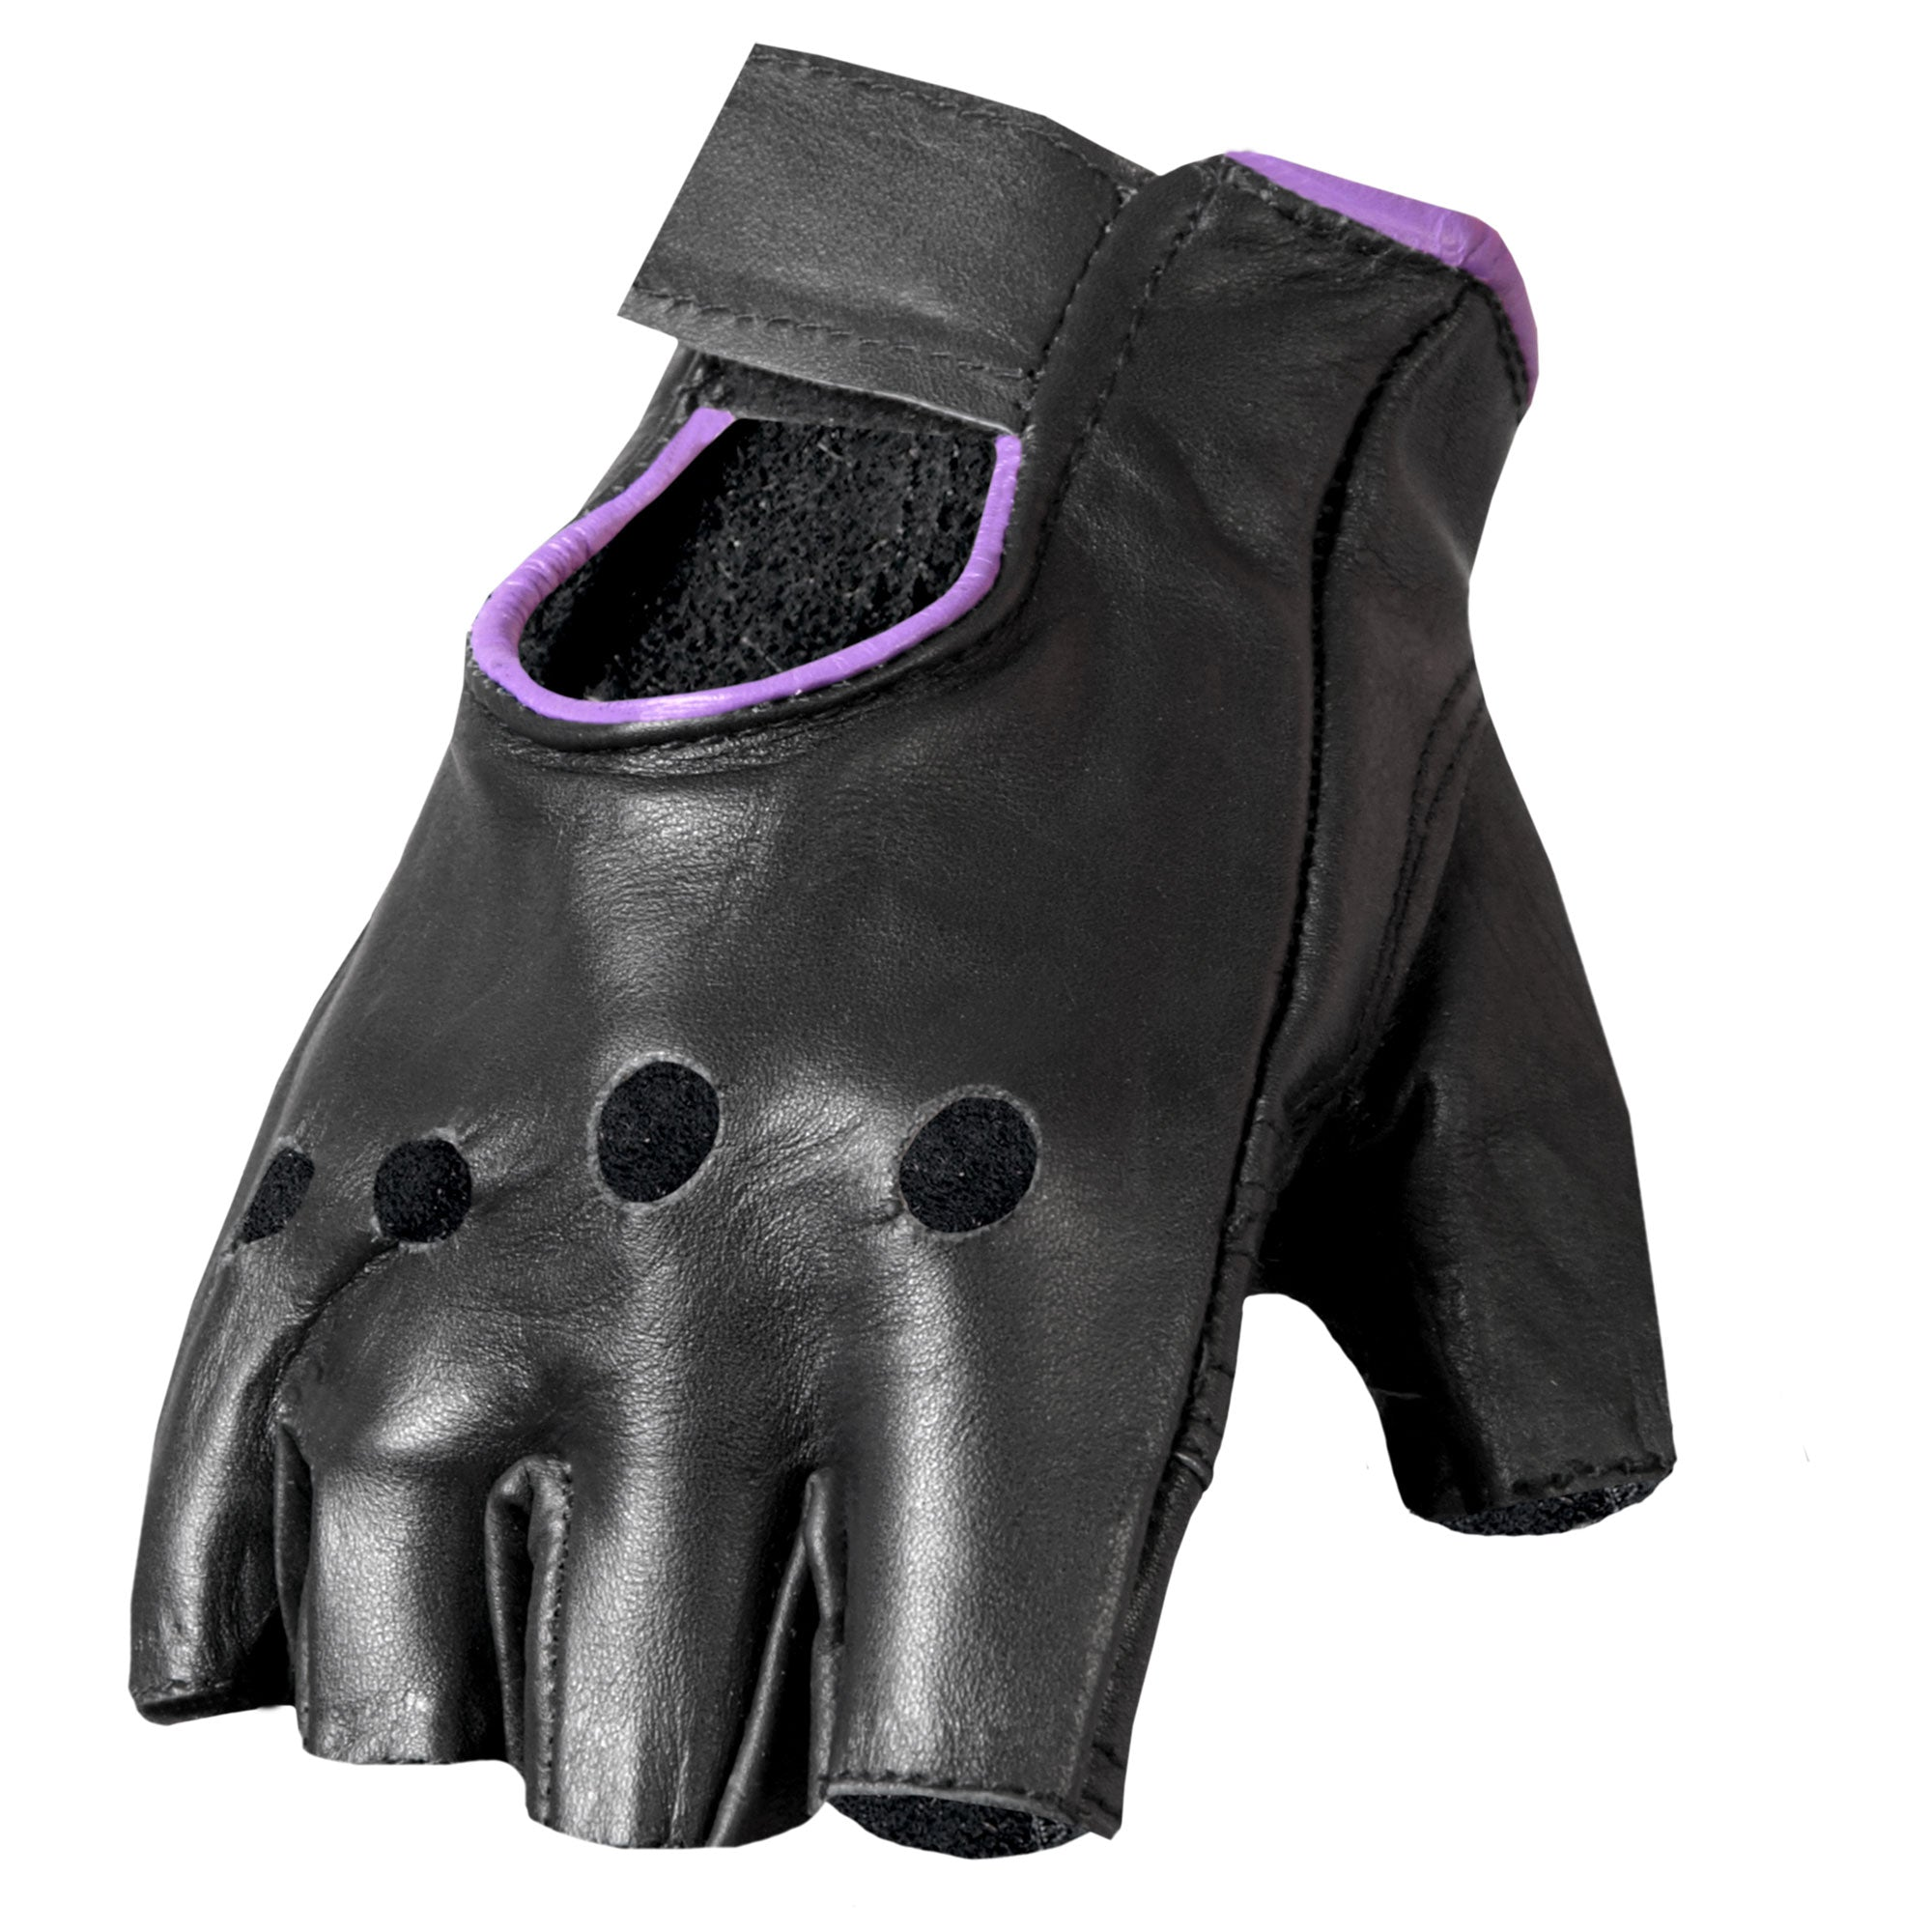 Hot Leathers GVL1005 Ladies Purple Piping Fingerless Gloves